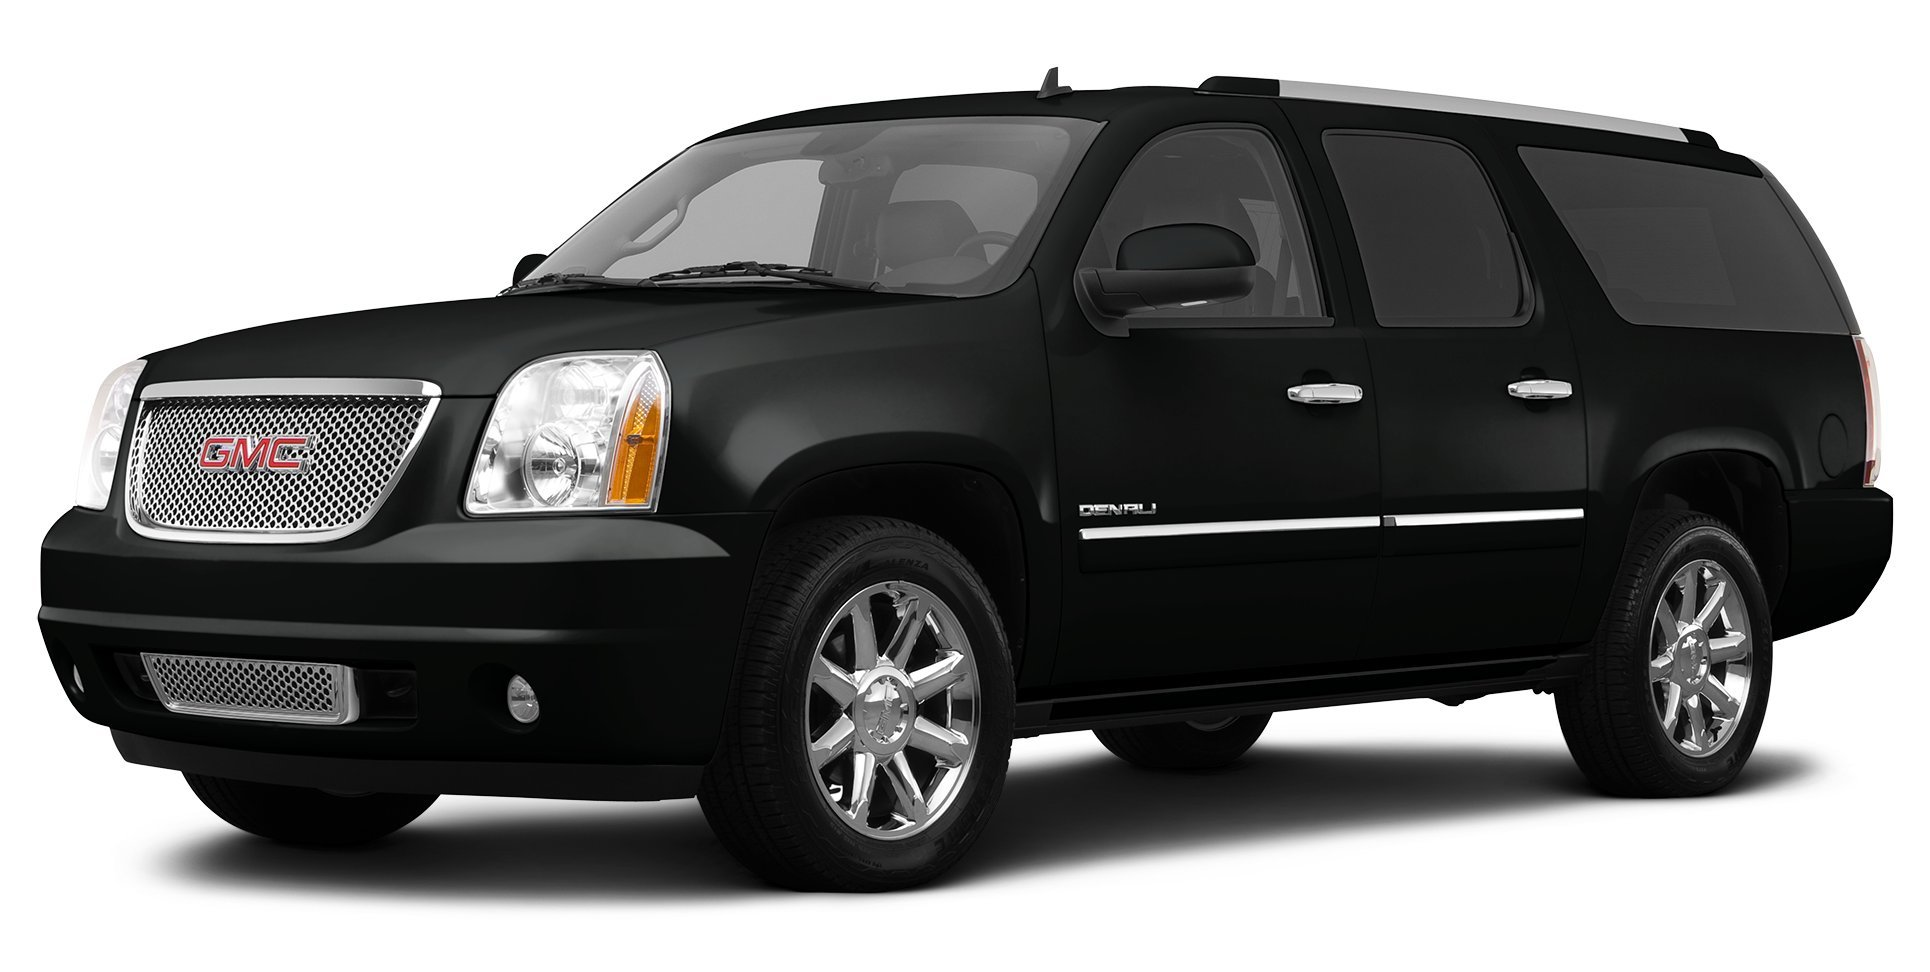 2013 ford expedition reviews images and specs vehicles. Black Bedroom Furniture Sets. Home Design Ideas